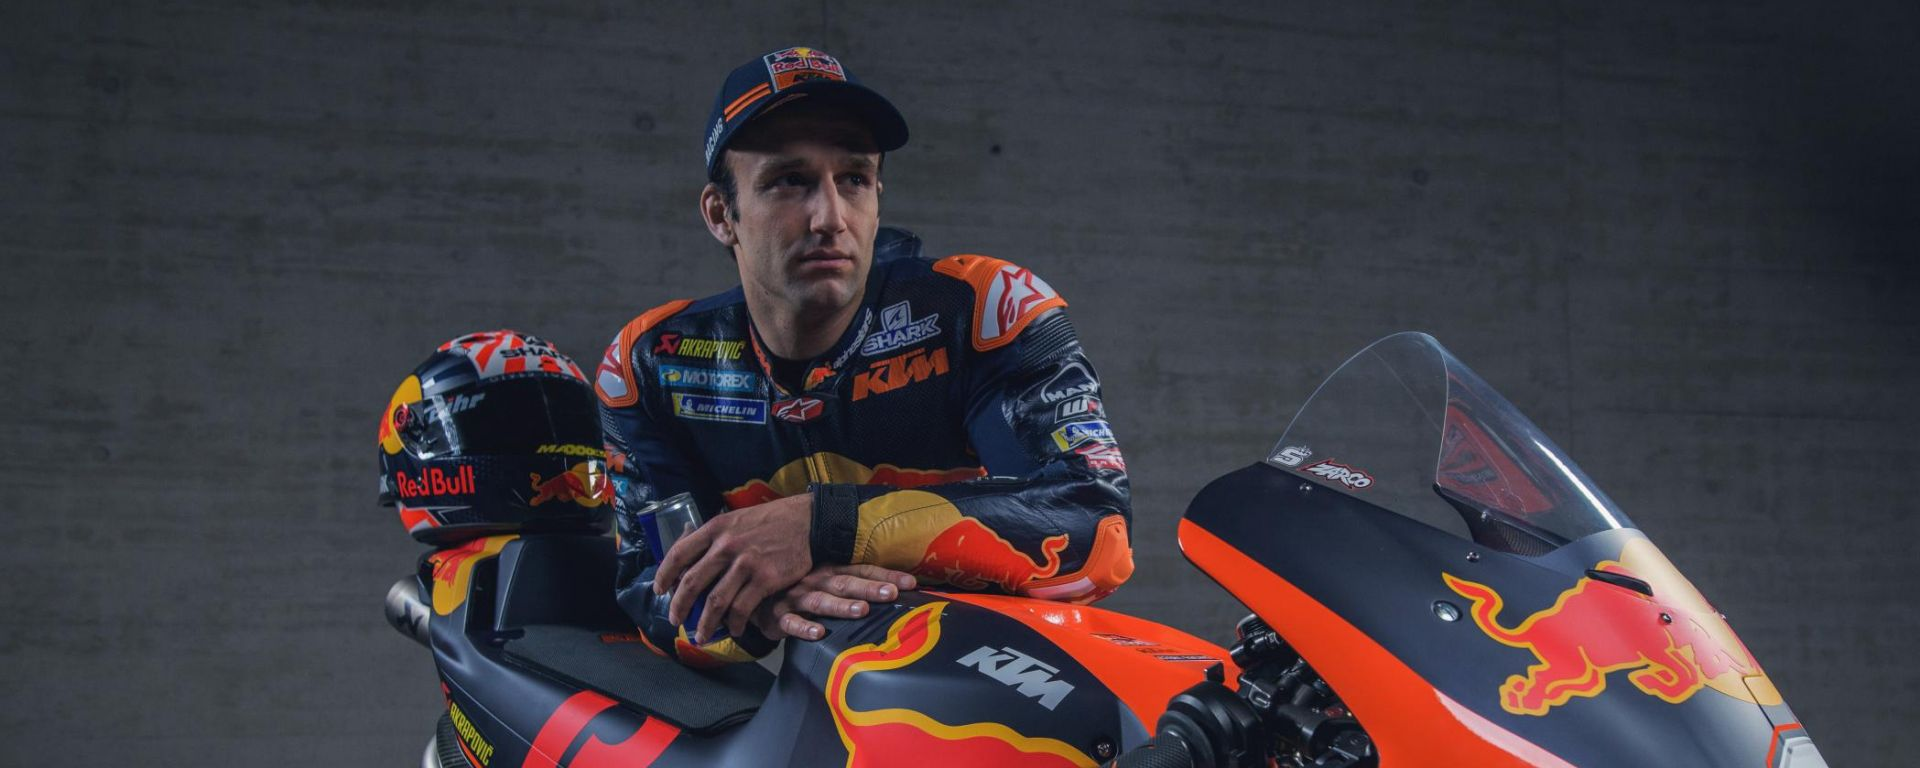 MotoGP 2019, Johann Zarco - Red Bull KTM Factory Racing